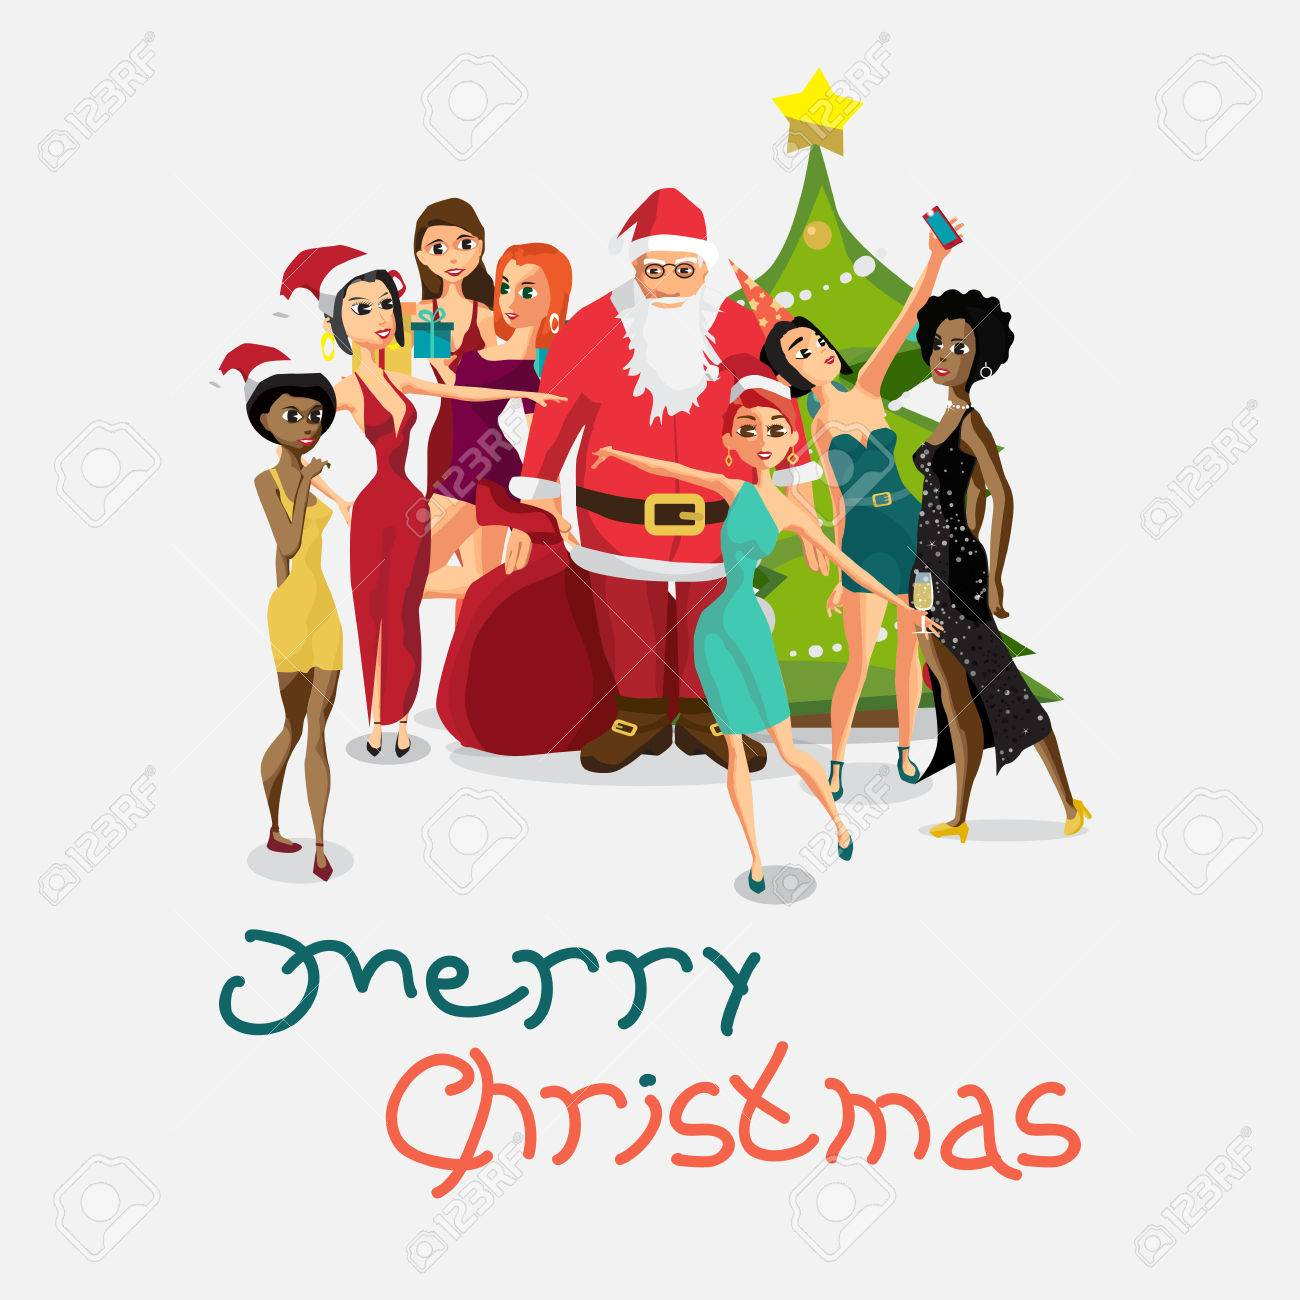 vector vector christmas new year party invitation santa claus is photographed with a group of girls cartoon flat style greeting card